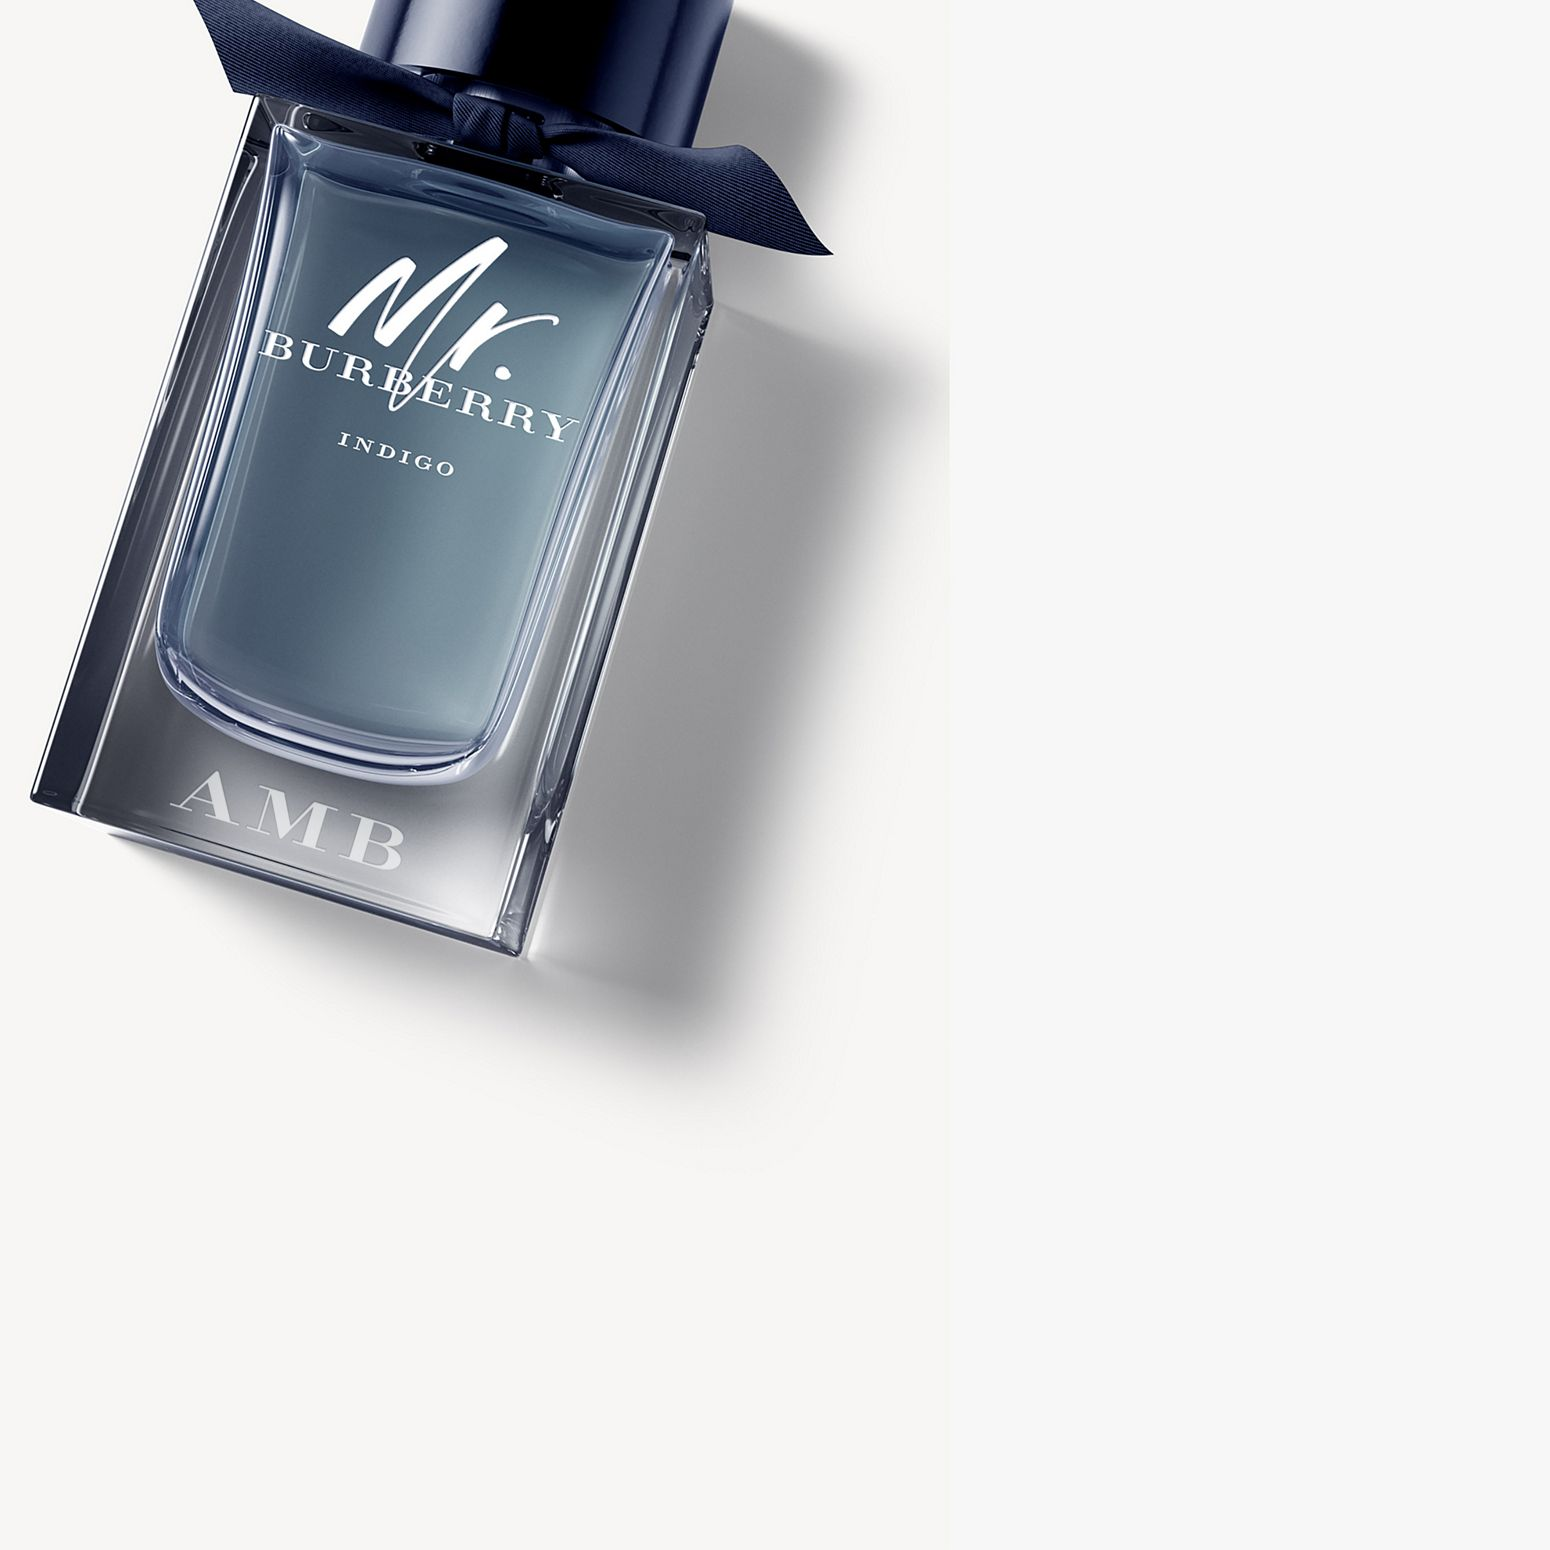 Mr. Burberry Indigo Eau de Toilette 150ml - Men | Burberry - gallery image 0